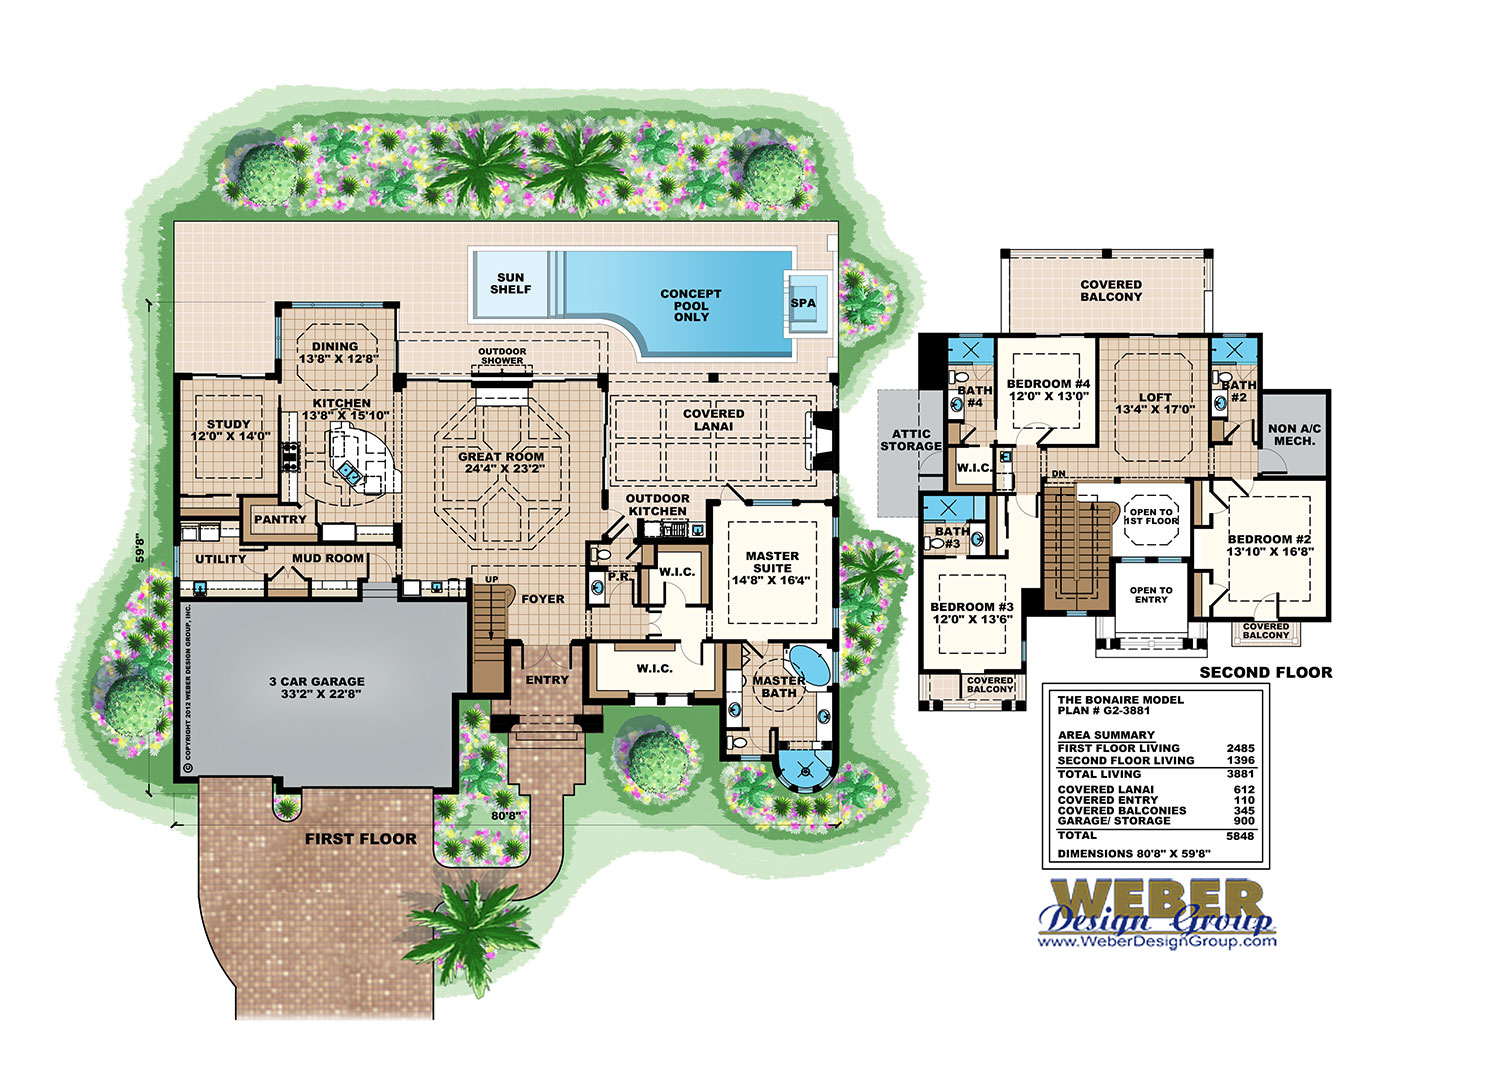 Pool House Plans  See Plans Including Pool, Cabana to